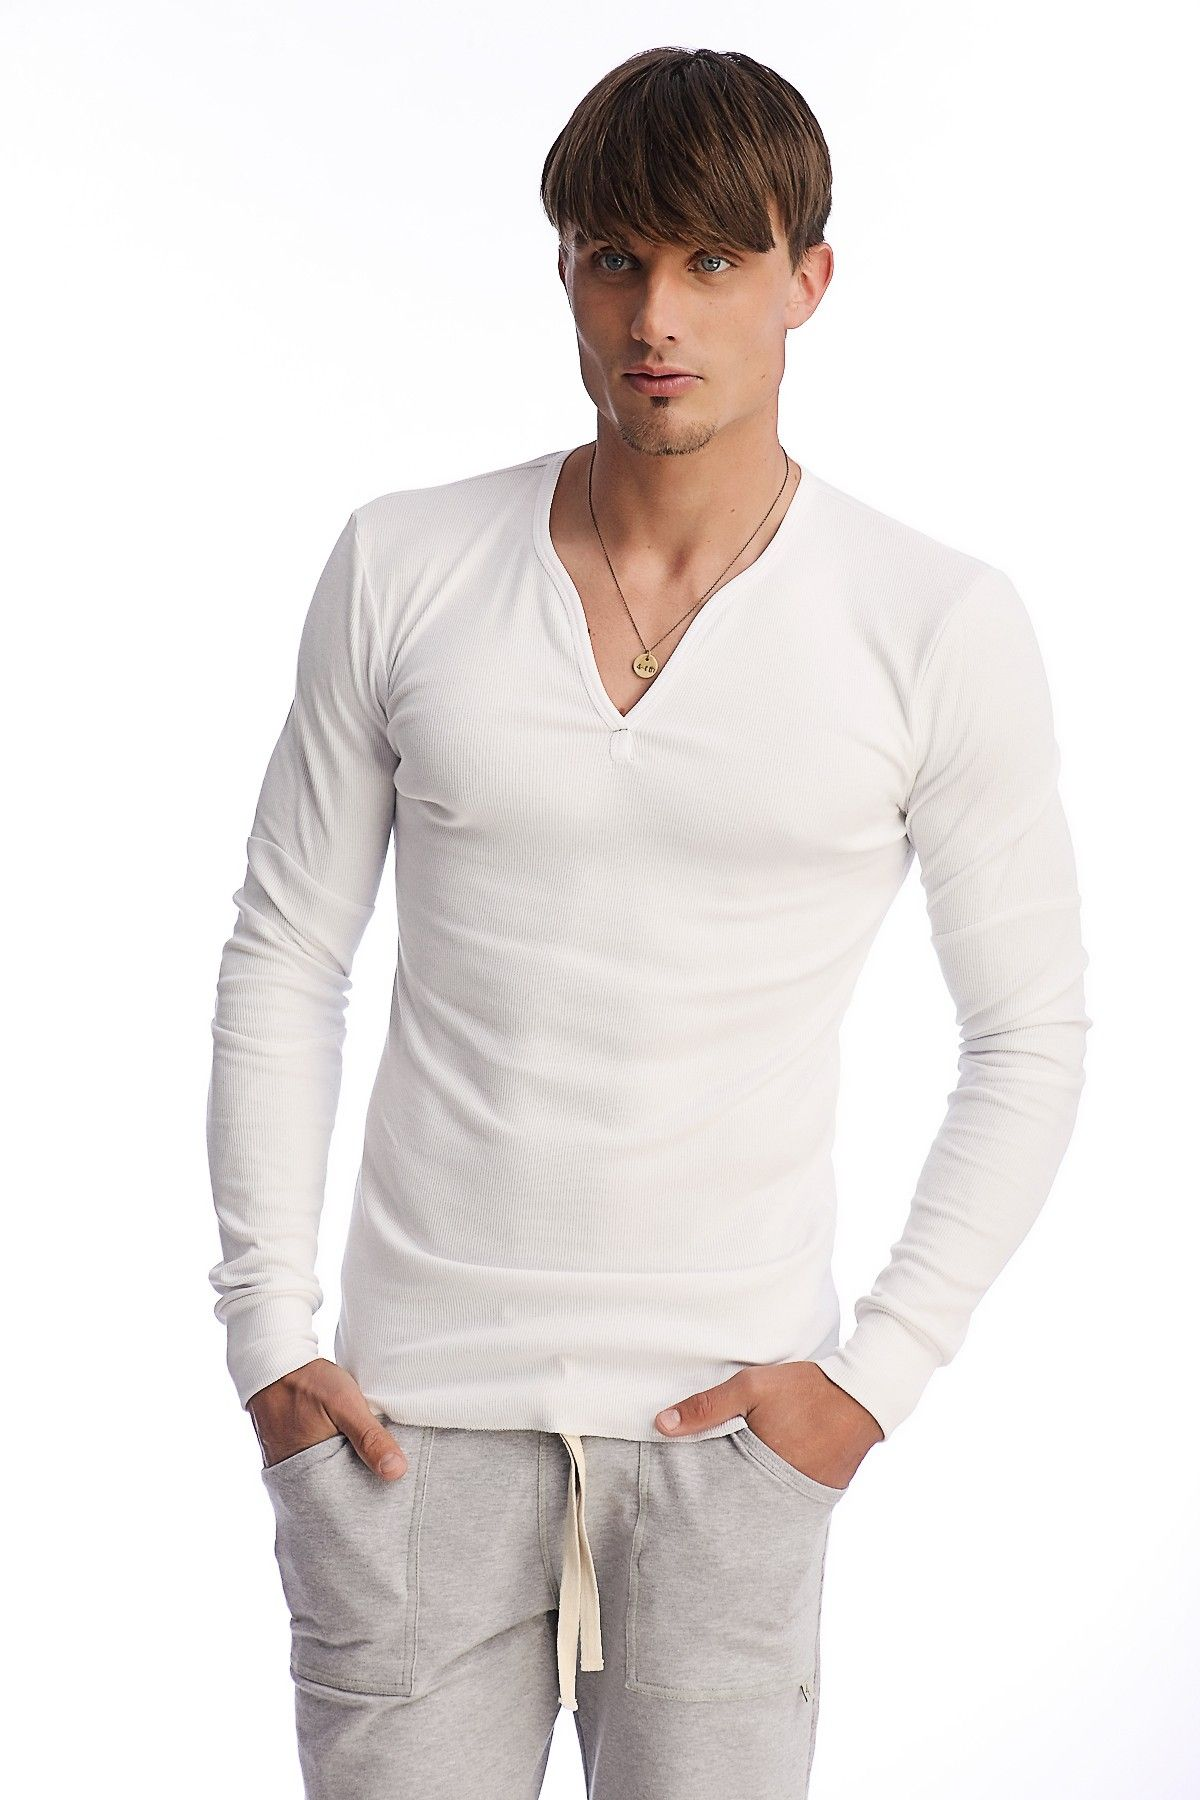 100 Breathable Men S Ribbed Thermal V Neck Long Sleeve Henley White Buy Online For The Price 57 95 At Yoga Eco Clothing Com Mens Thermals Mens Sleeve Men [ 1800 x 1200 Pixel ]